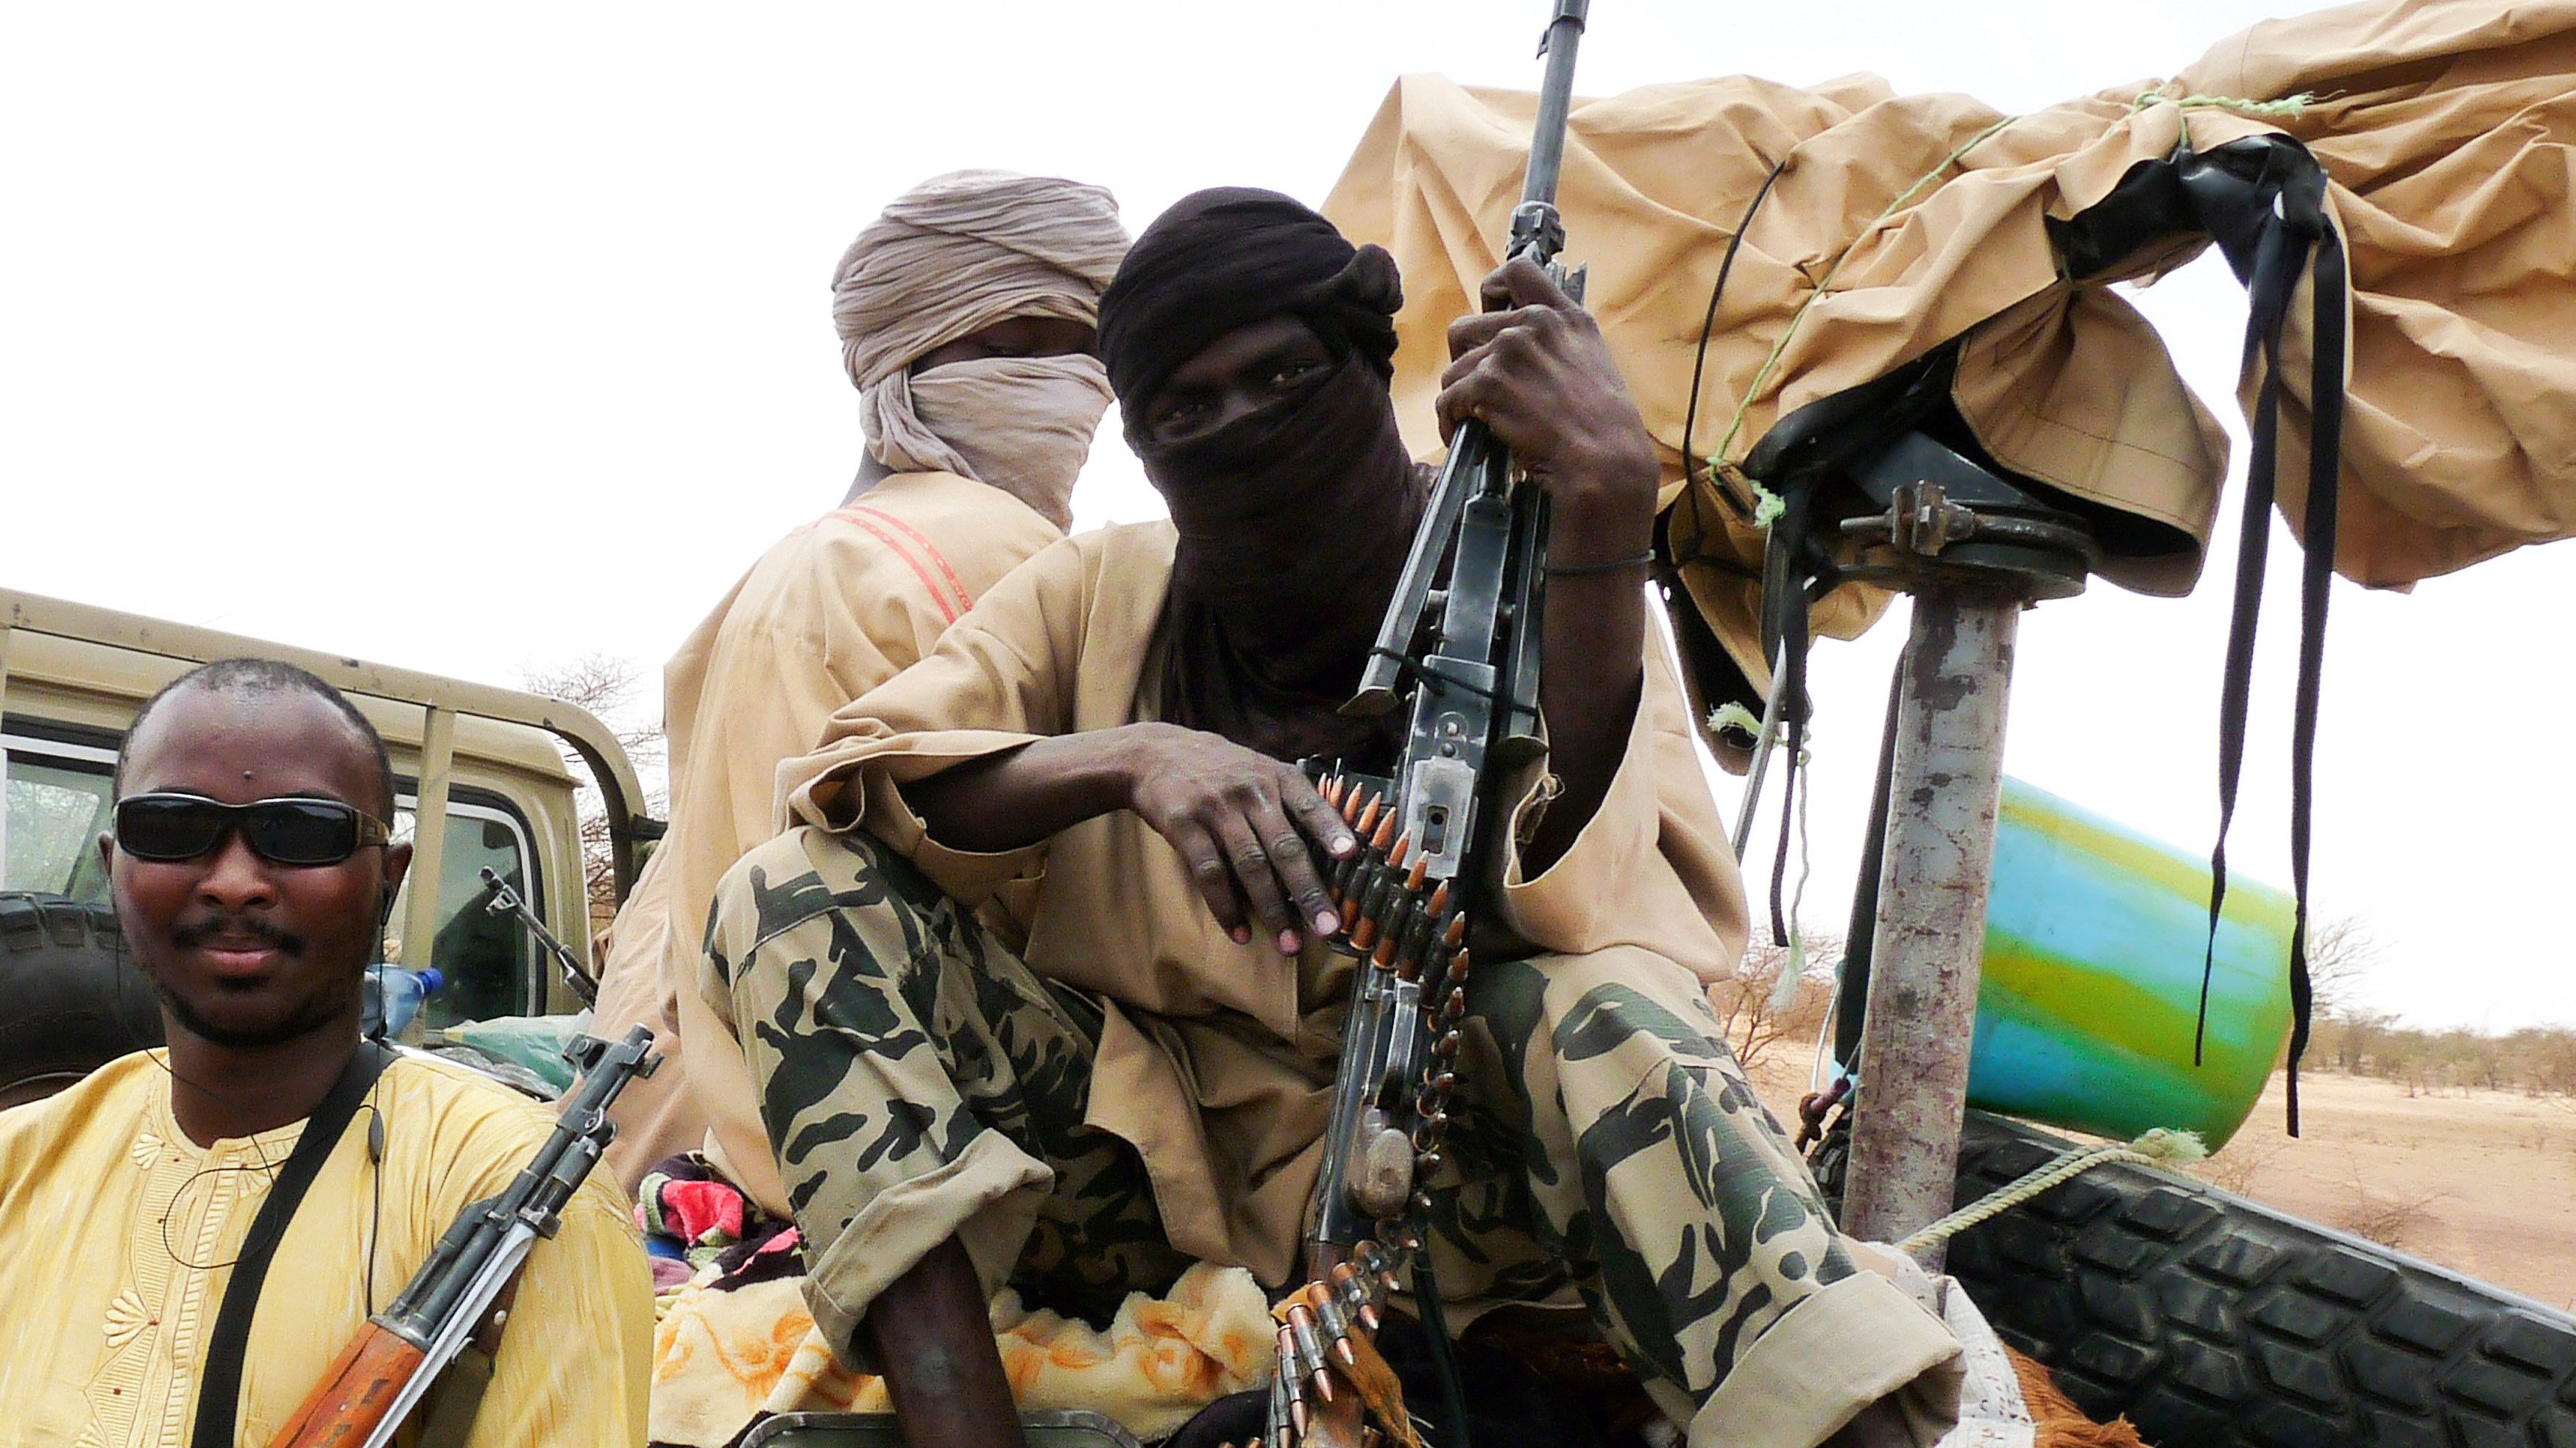 People in rural Mali support jihadists over corrupt government officials and marginalization